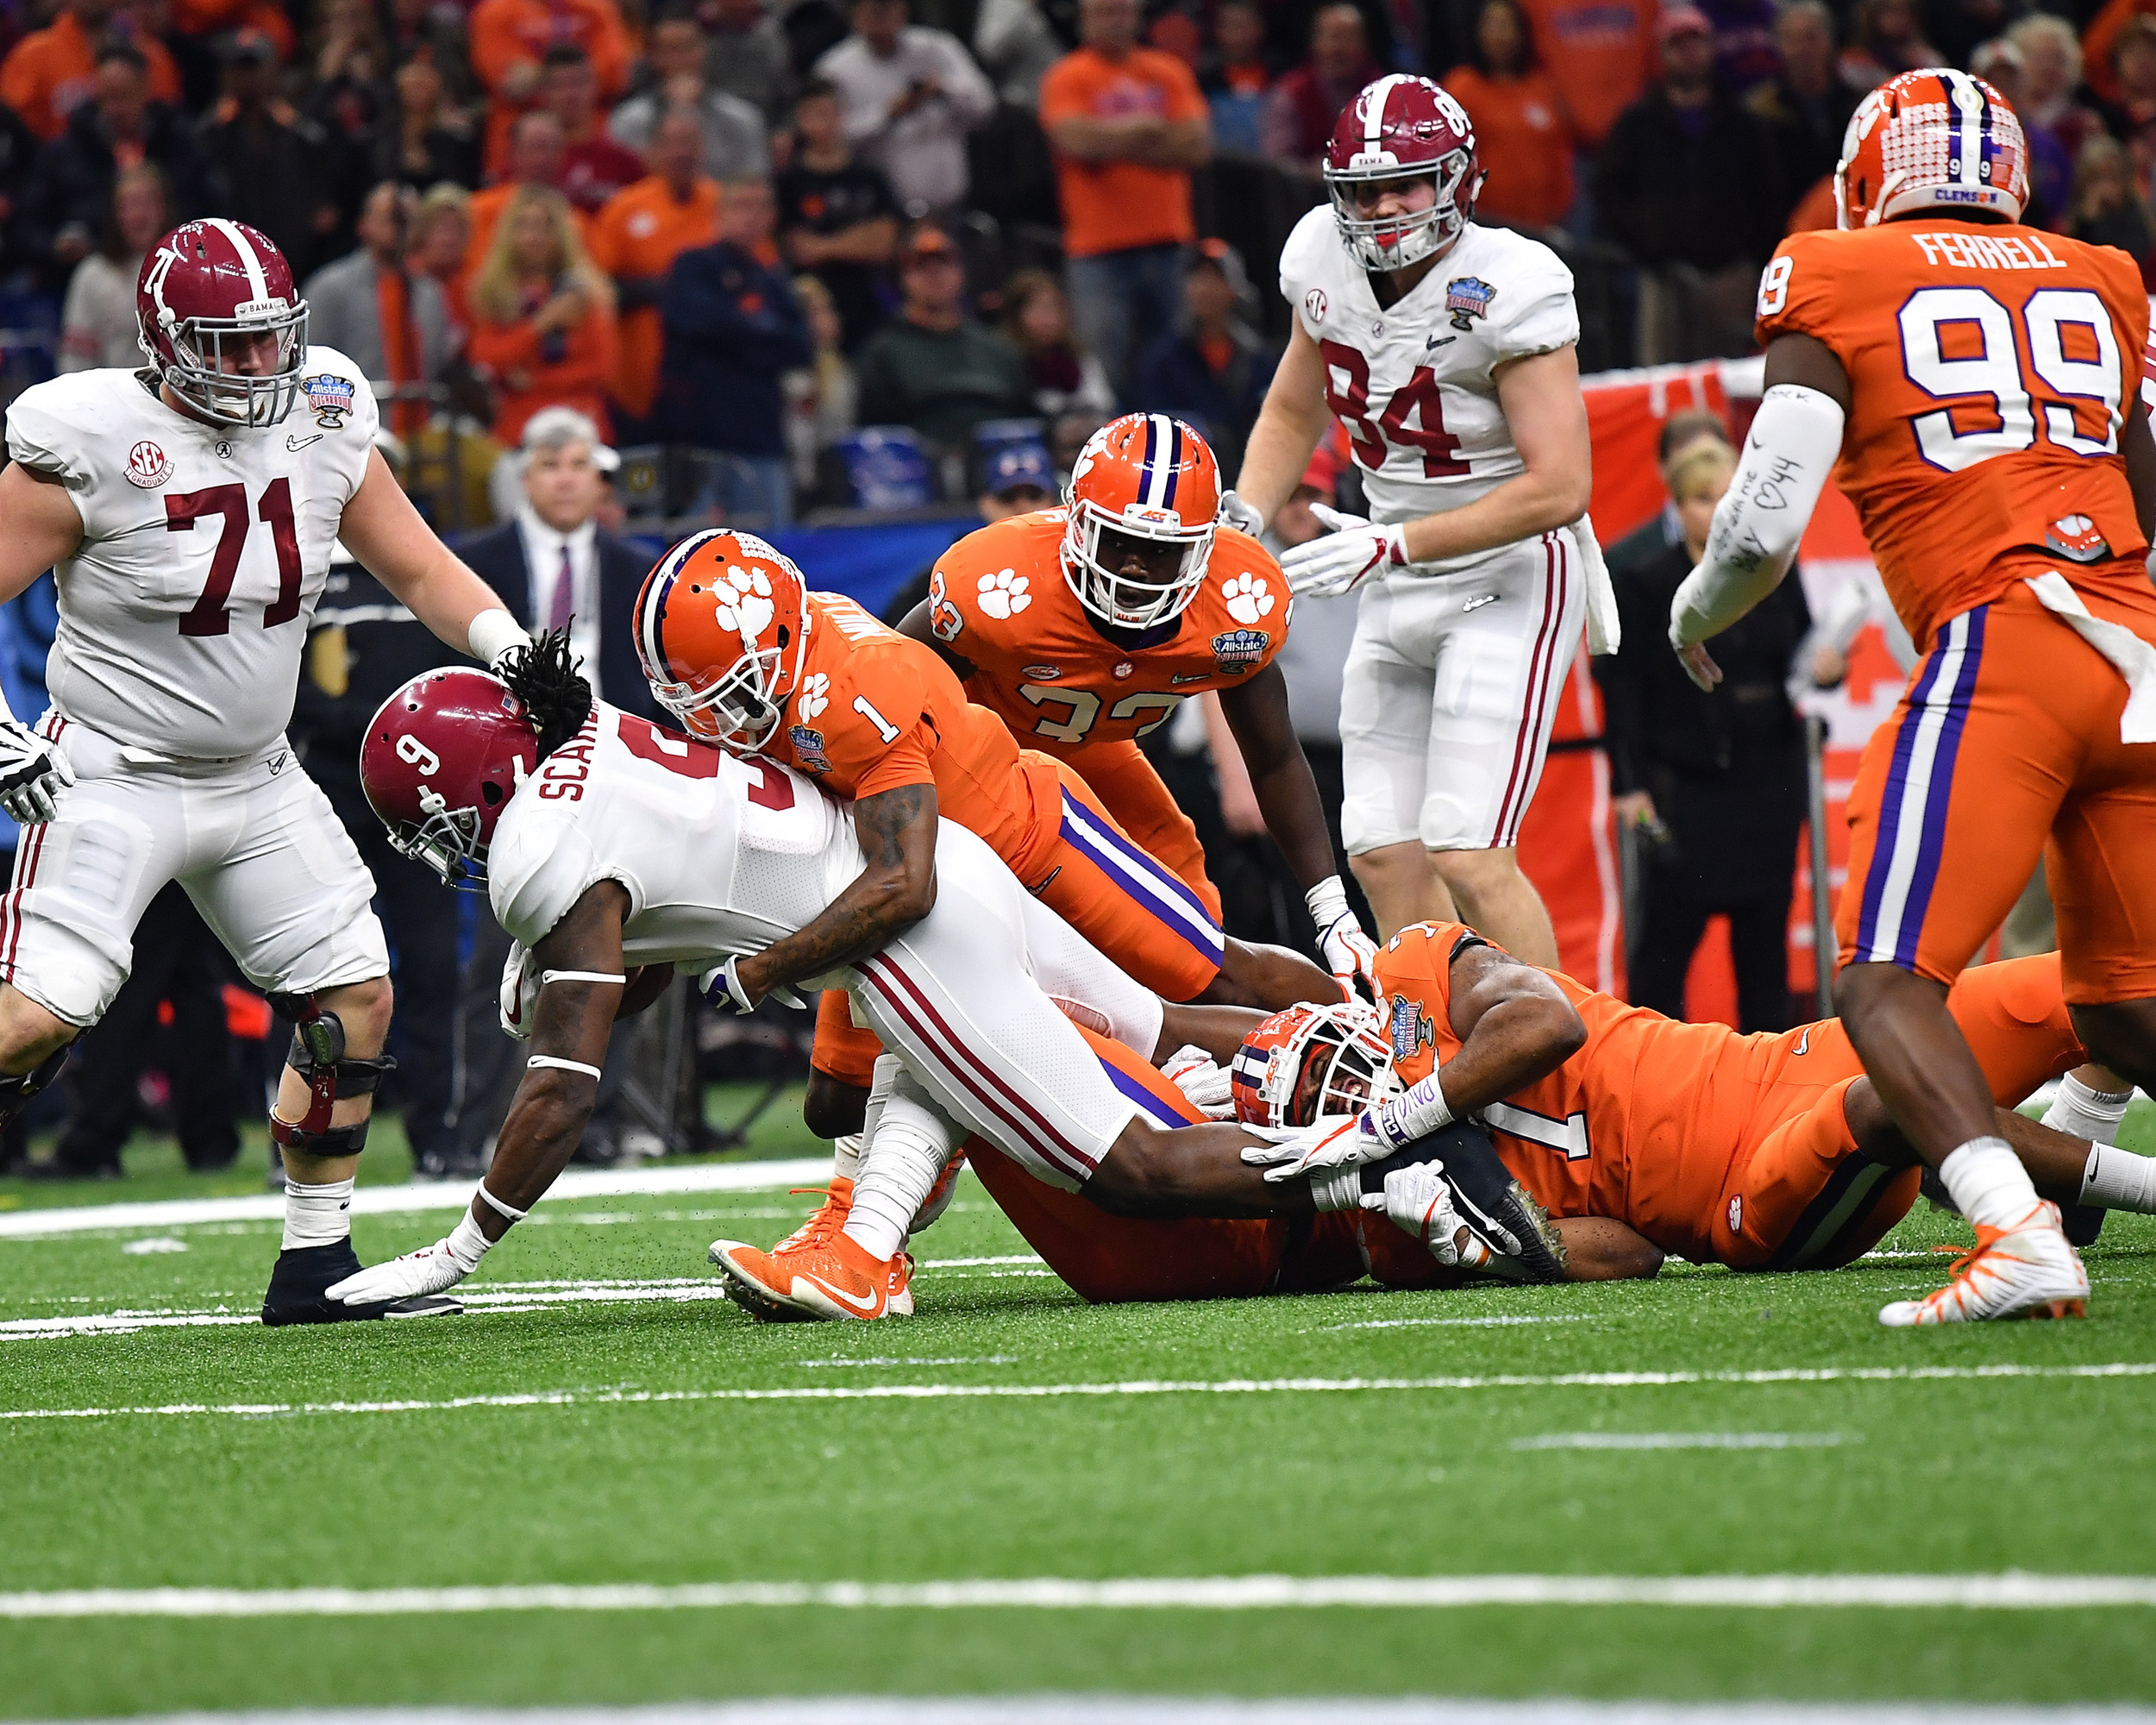 Alabama Crimson Tide running back Bo Scarbrough (9) is tackled in the first half of the 2018 AllState Sugar Bowl on Jan. 1, 2018, at the Mercedes-Benz SuperDome in New Orleans, La. Alabama won the game 24-6. (Photo by Lee Walls)